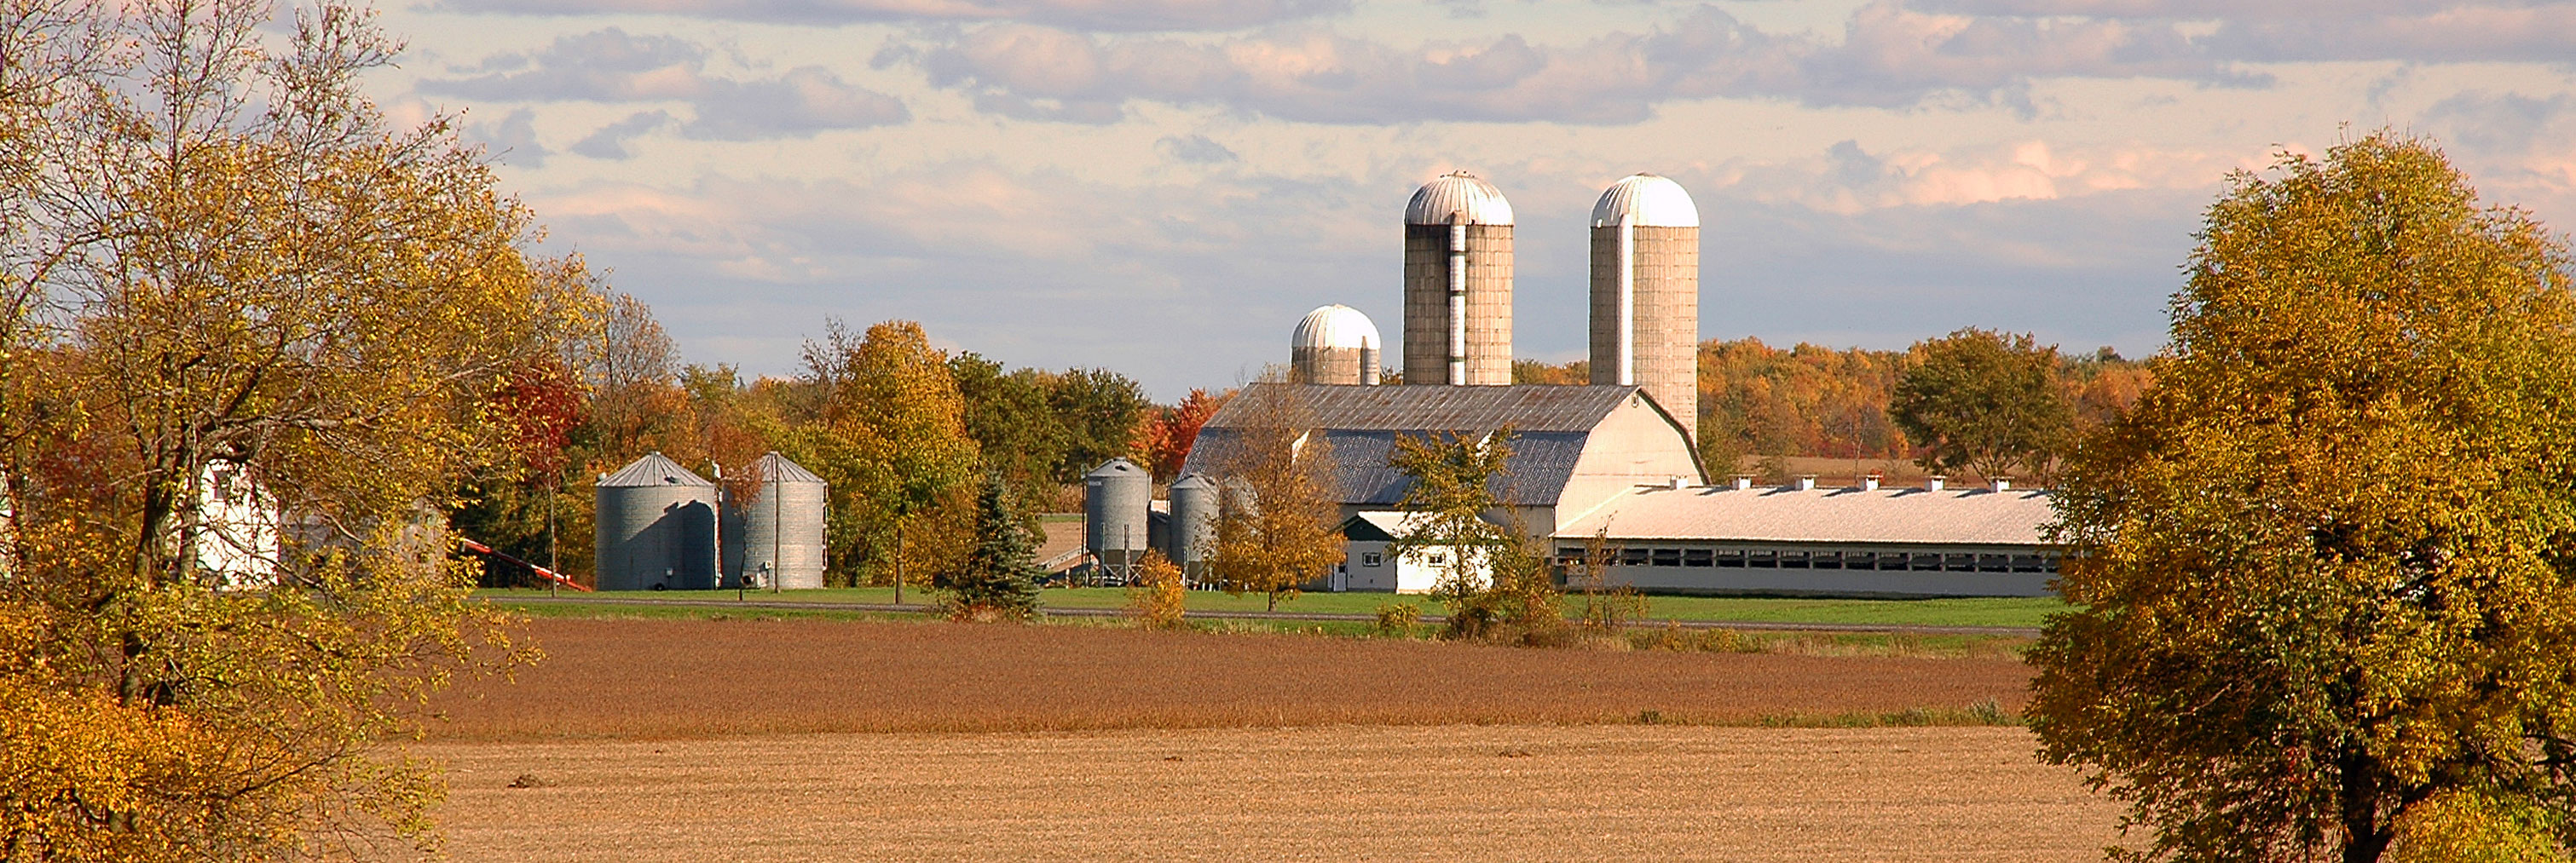 dairy farm and surrounding fields in autumn